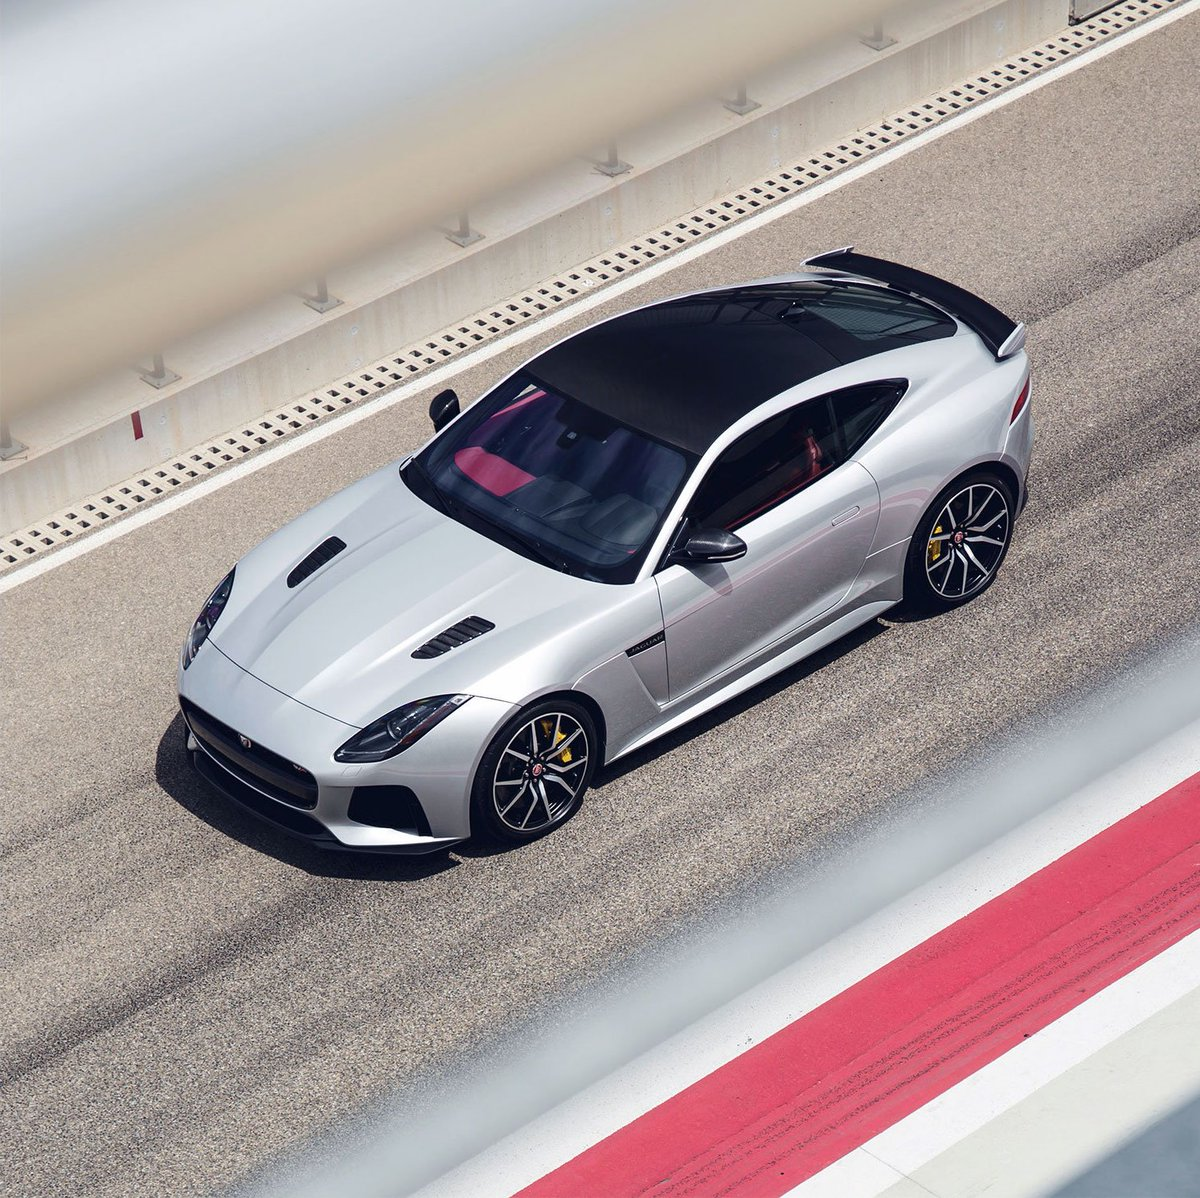 Body goals. #FTYPE #SVR The powerful shape and beautiful proportions of the F-TYPE reveal its heritage, the latest in the iconic Jaguar bloodline of high-performance sports cars. https://t.co/q0VWX5bYYK